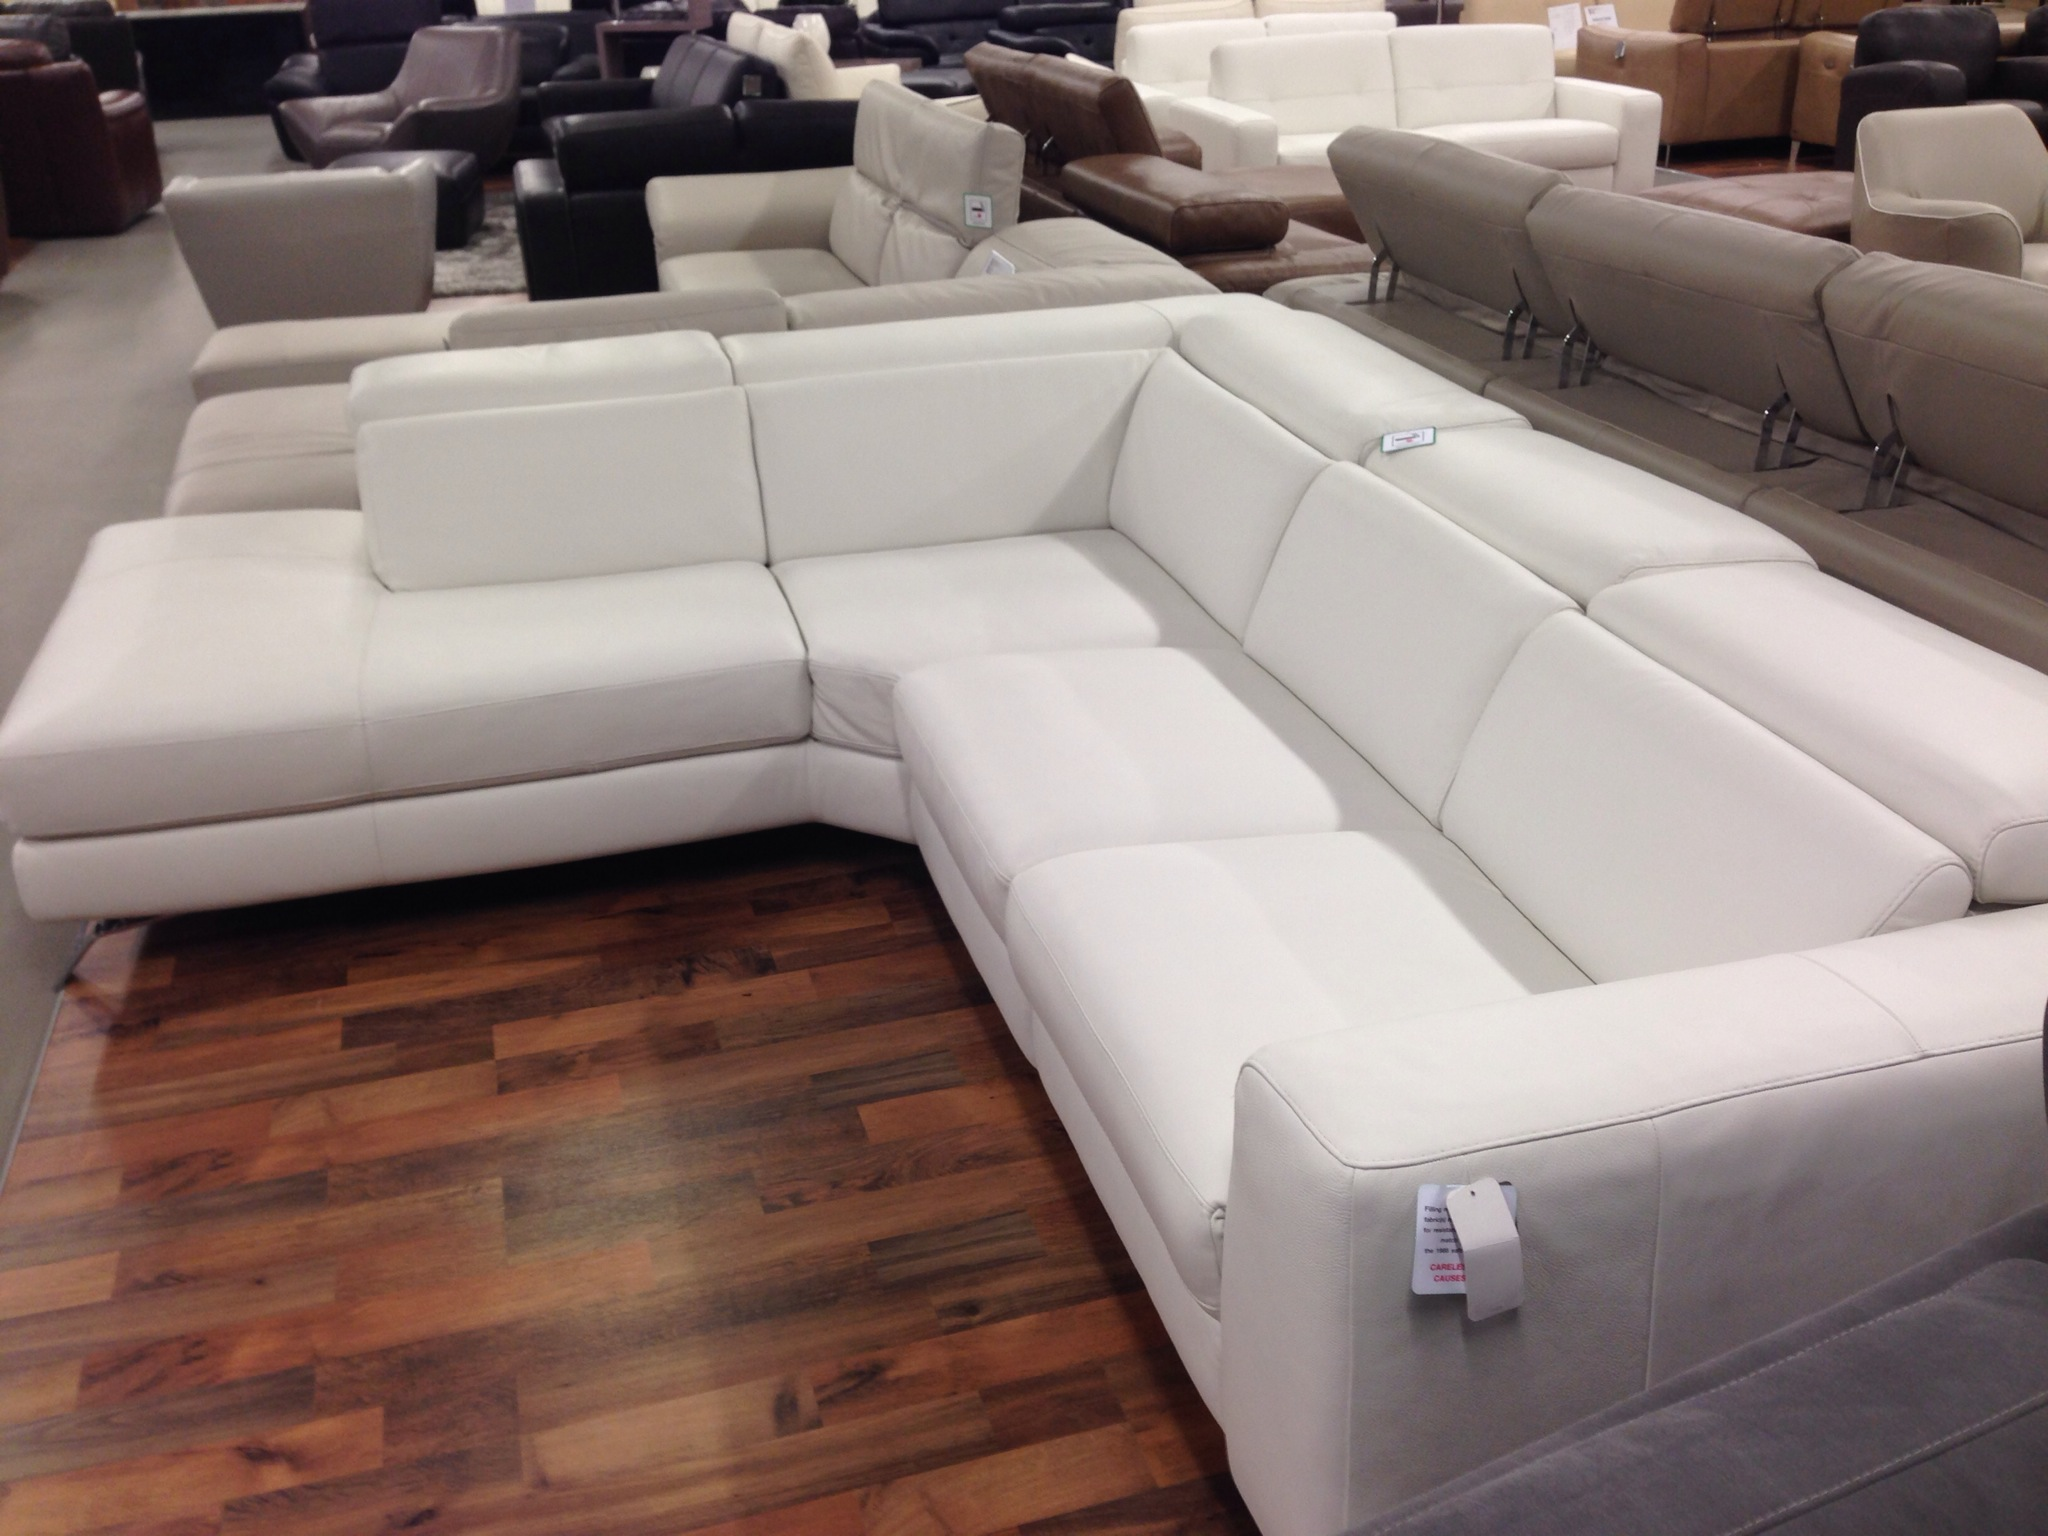 sofa beds blackburn rp sleeper cover furnimax offers a large quantity of natuzzi editions